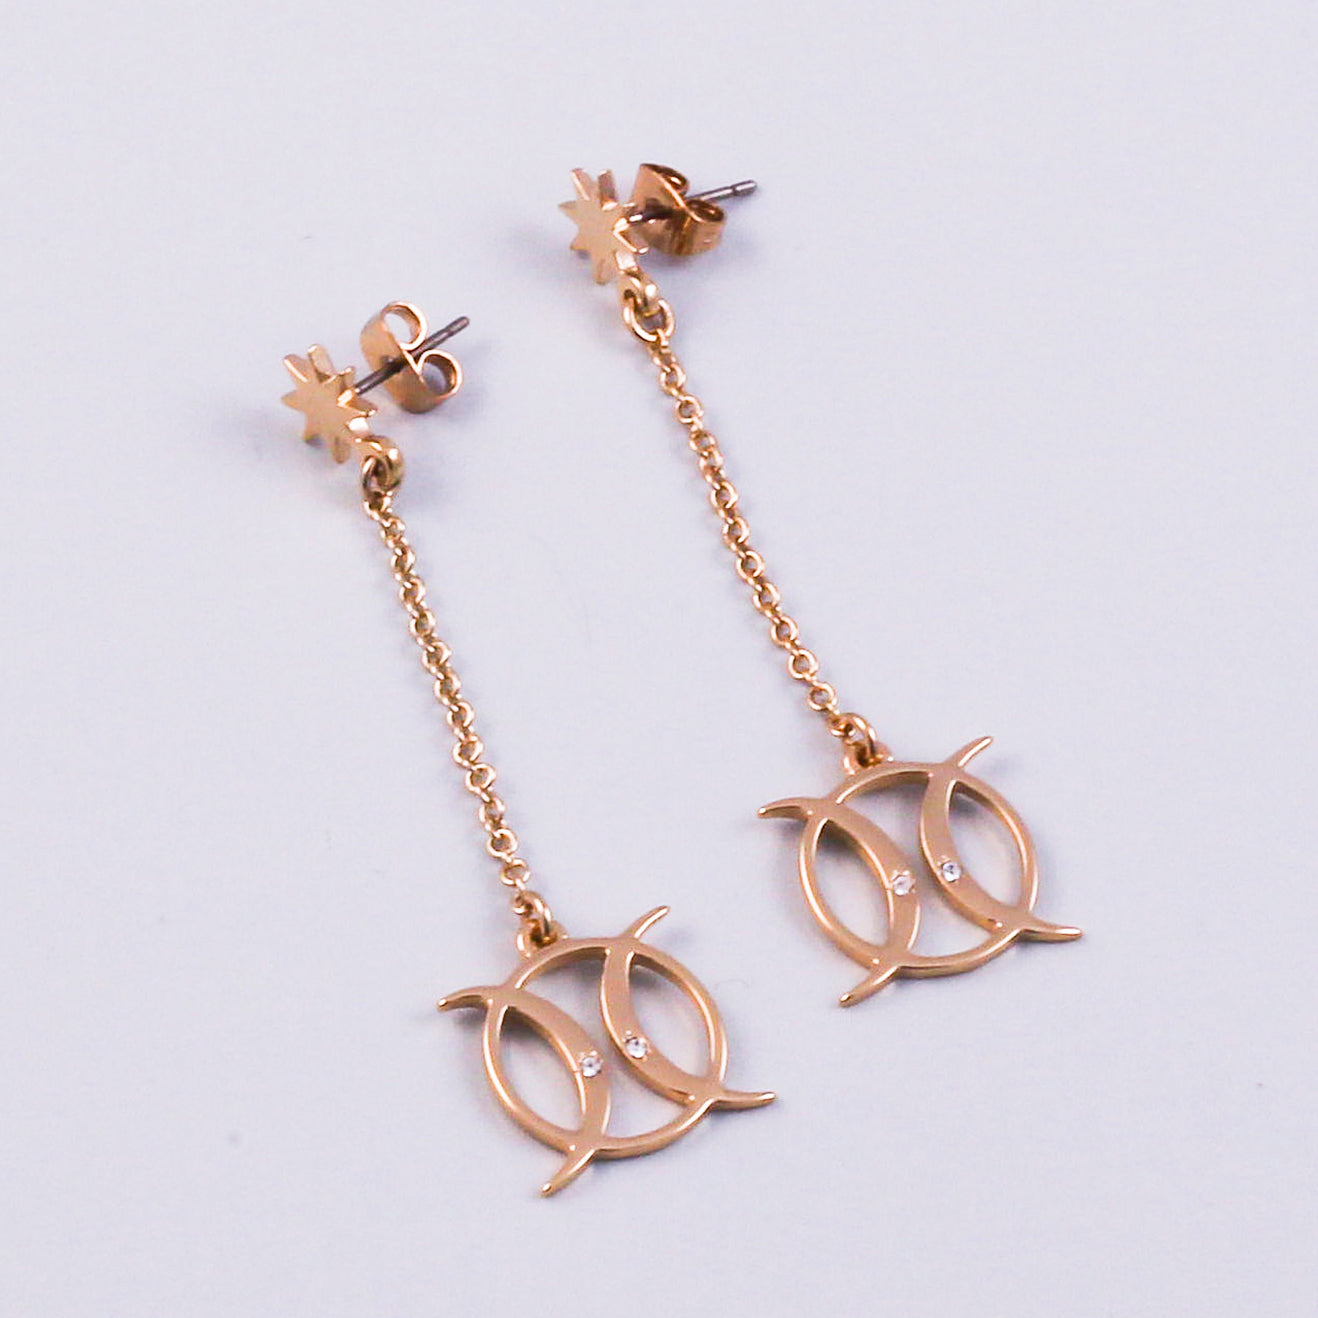 Gold Triple Moon Goddess Symbol Earrings